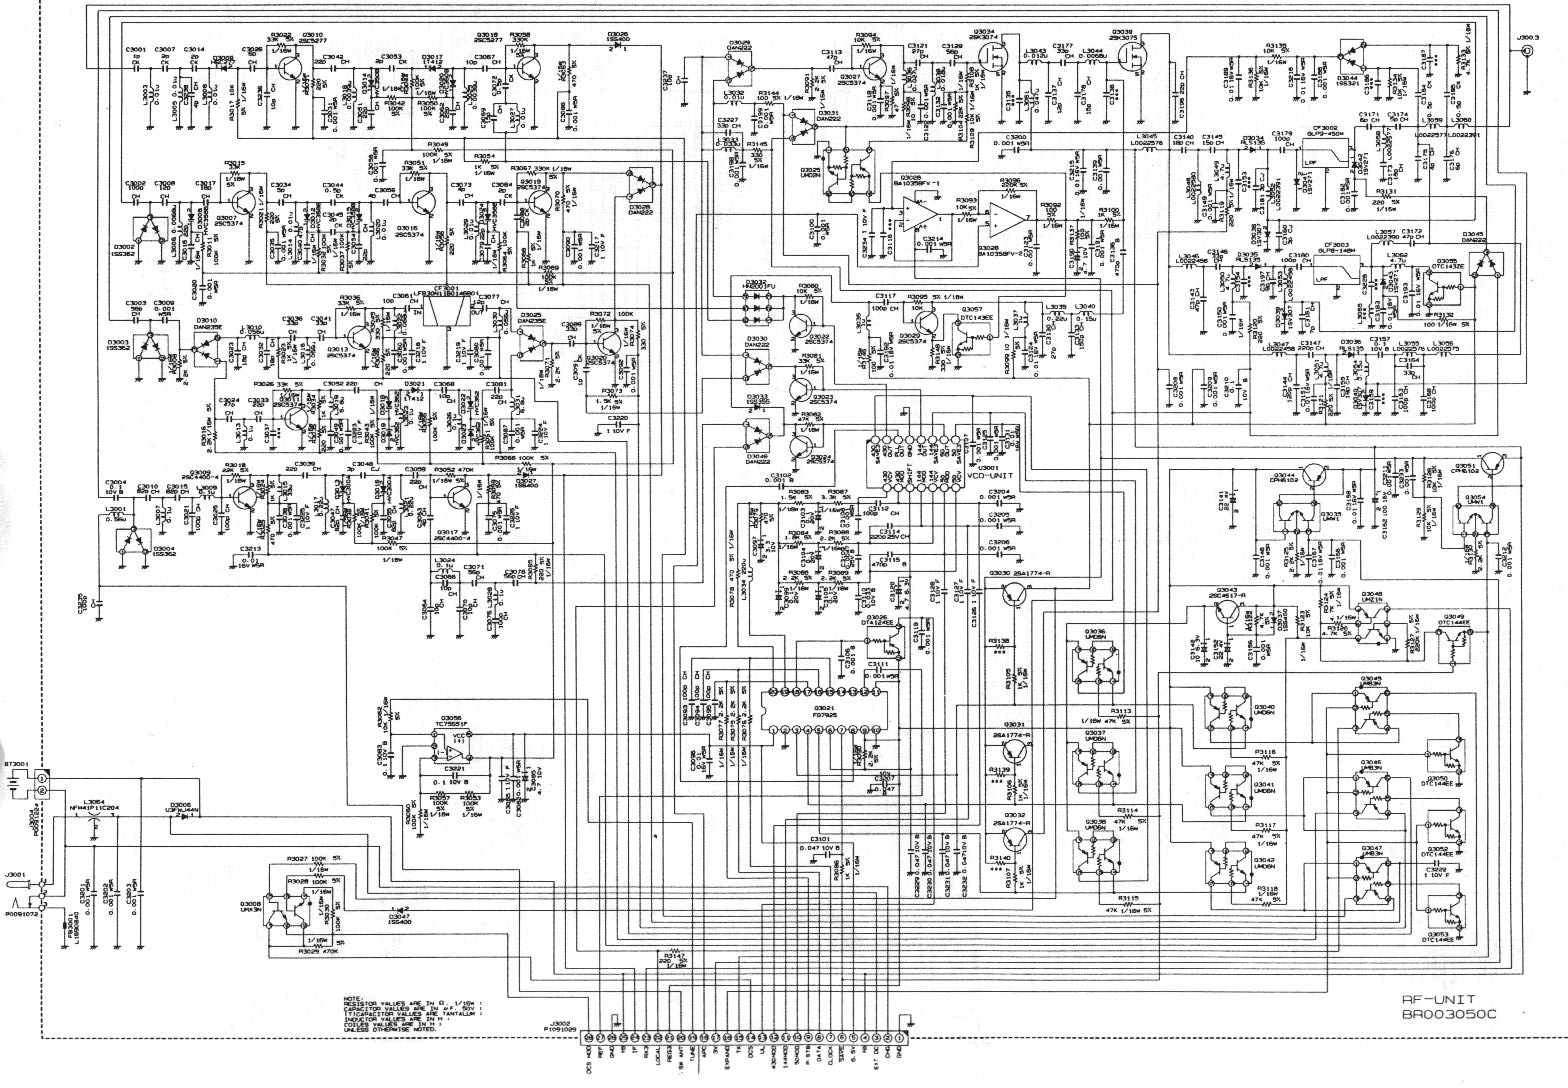 YAESU VX 5 Schematic c index of pub radio_manuals yaesu Yaesu G-450A at n-0.co